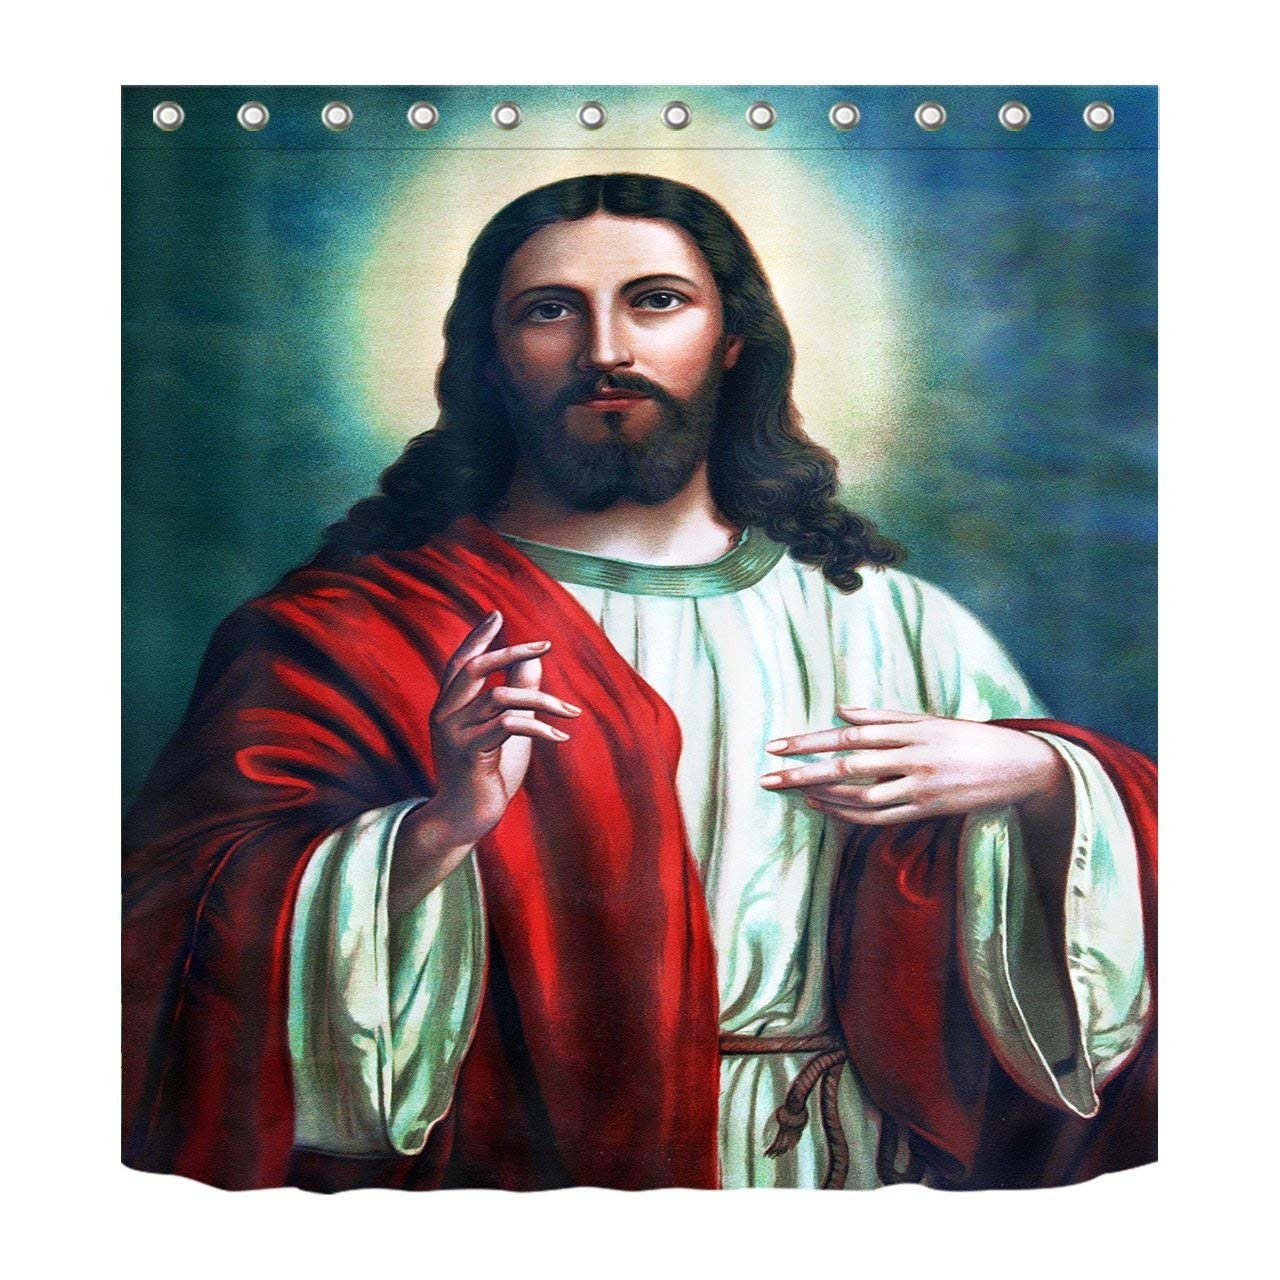 LB Son of God Jesus Christ Bless Decoration Shower Curtain Polyester Fabric 3D 60x72 Mildew Resistant Waterproof Lord Red Clothing Halo Bathroom Bath Curtains Liner Set Hooks